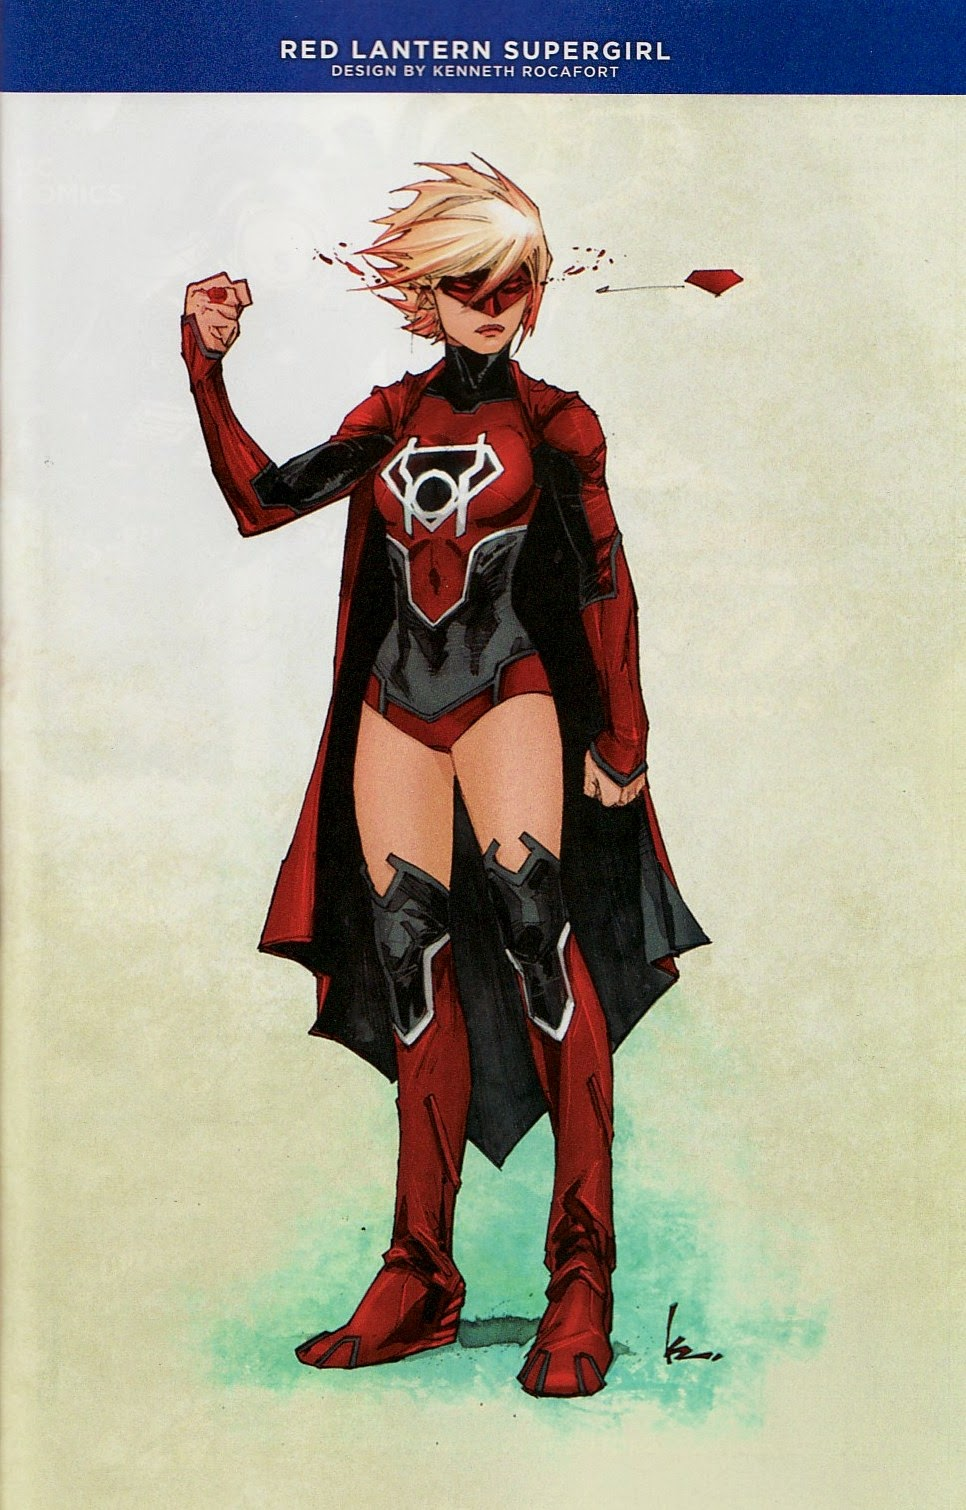 First Off Here Is Kenneth Rocaforts Red Lantern Design For Supergirl